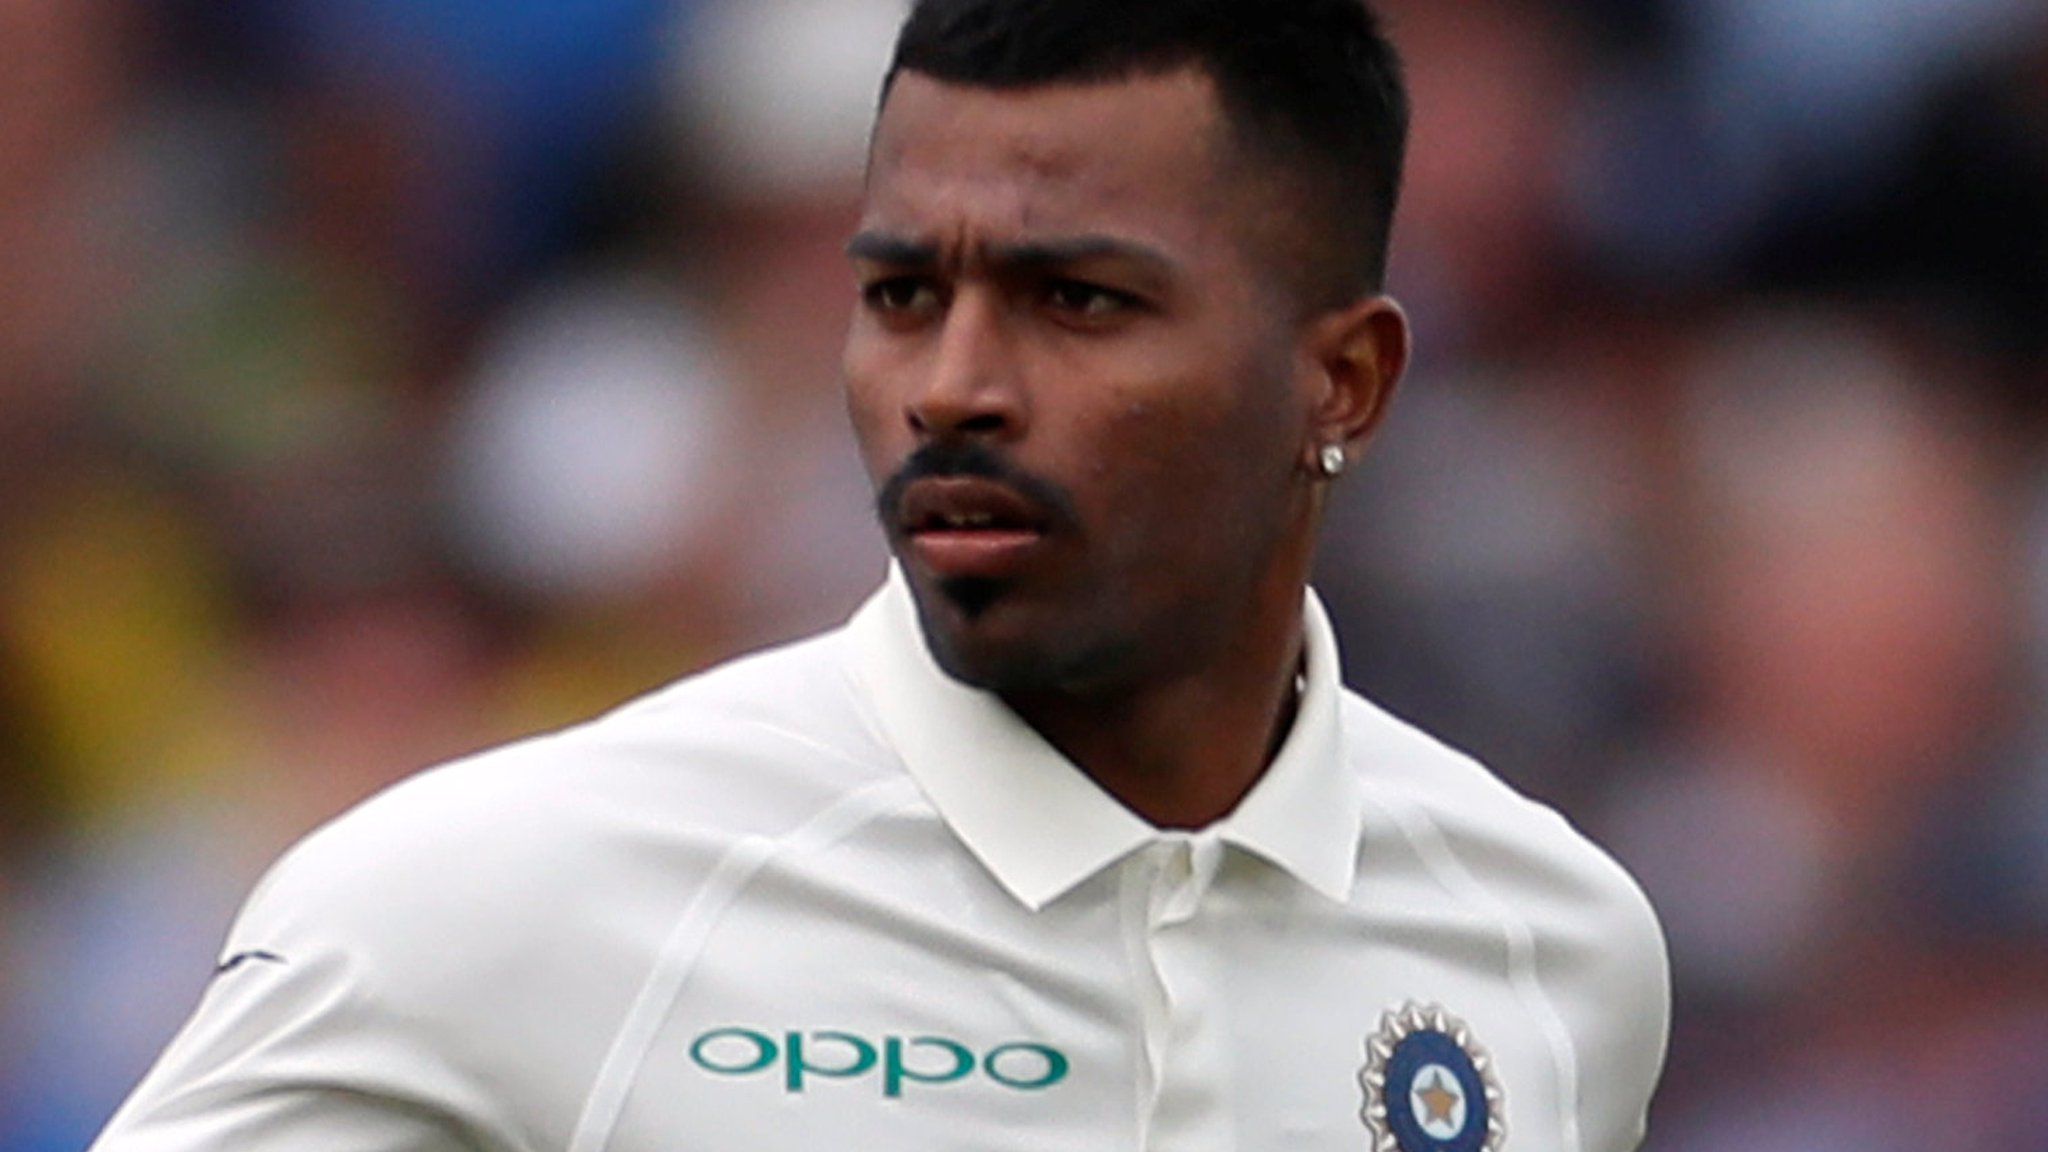 Don't compare me with Kapil Dev - Pandya